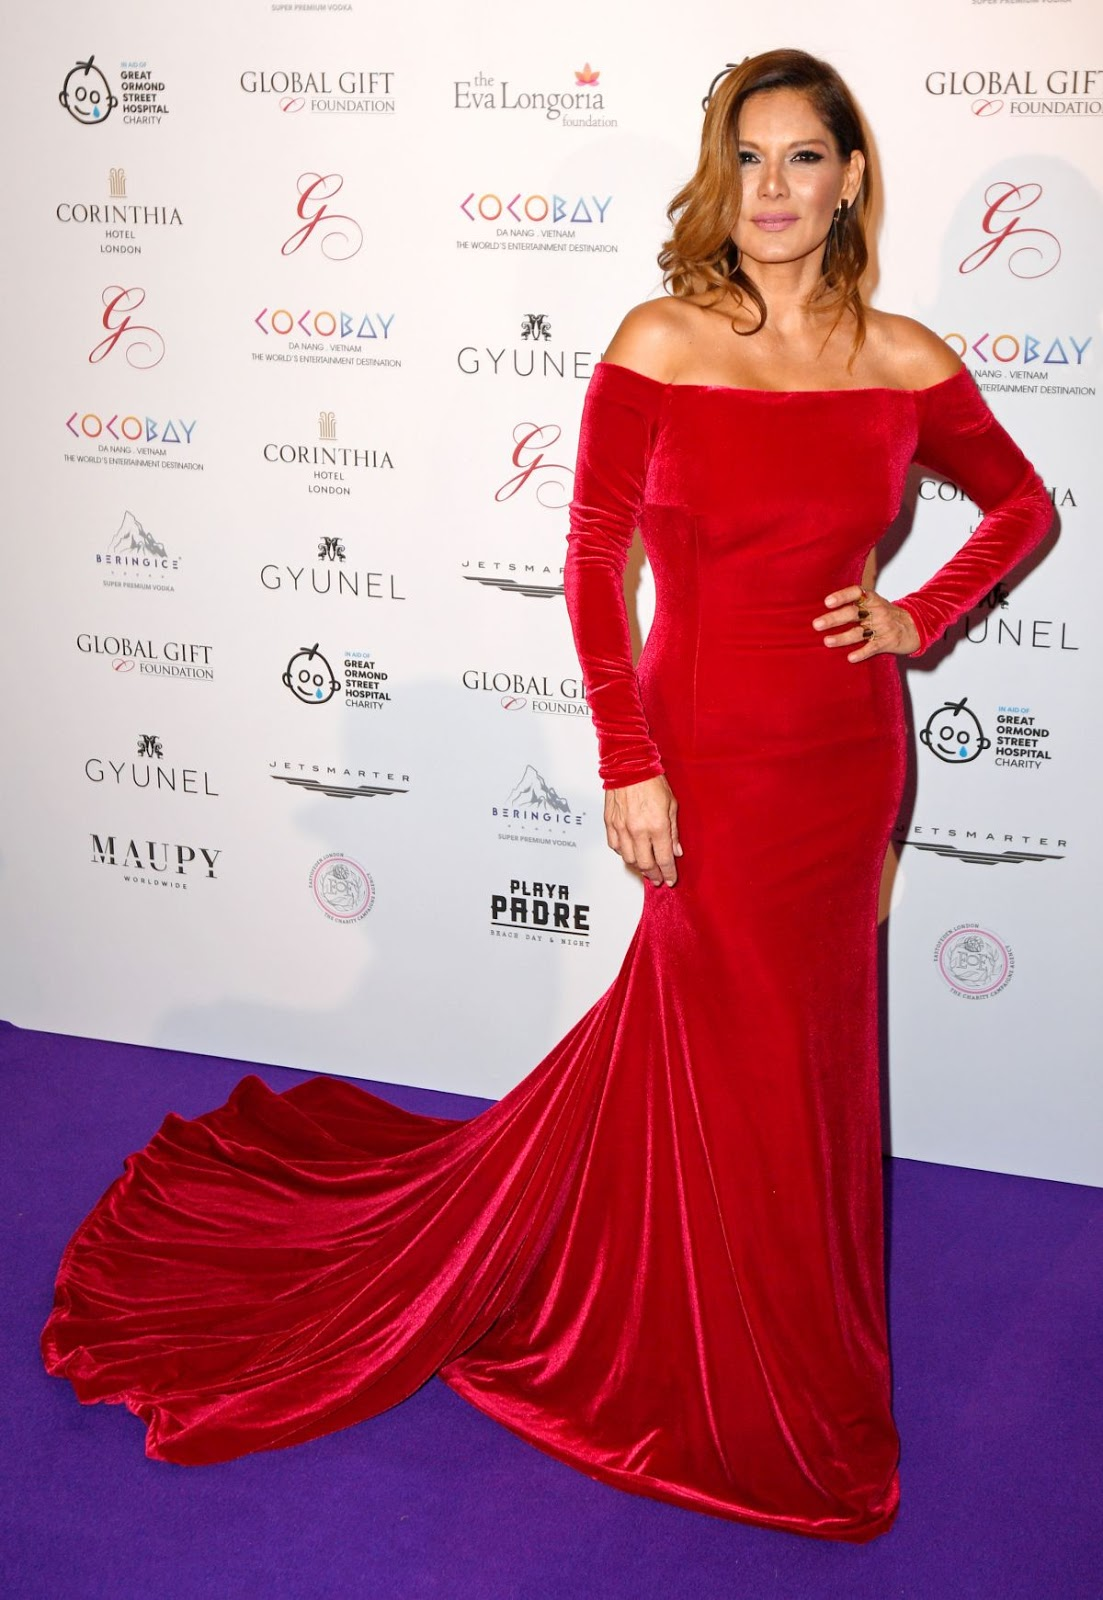 Photos of Ivonne Reyes in Hot red dress at Global Gift Gala in London